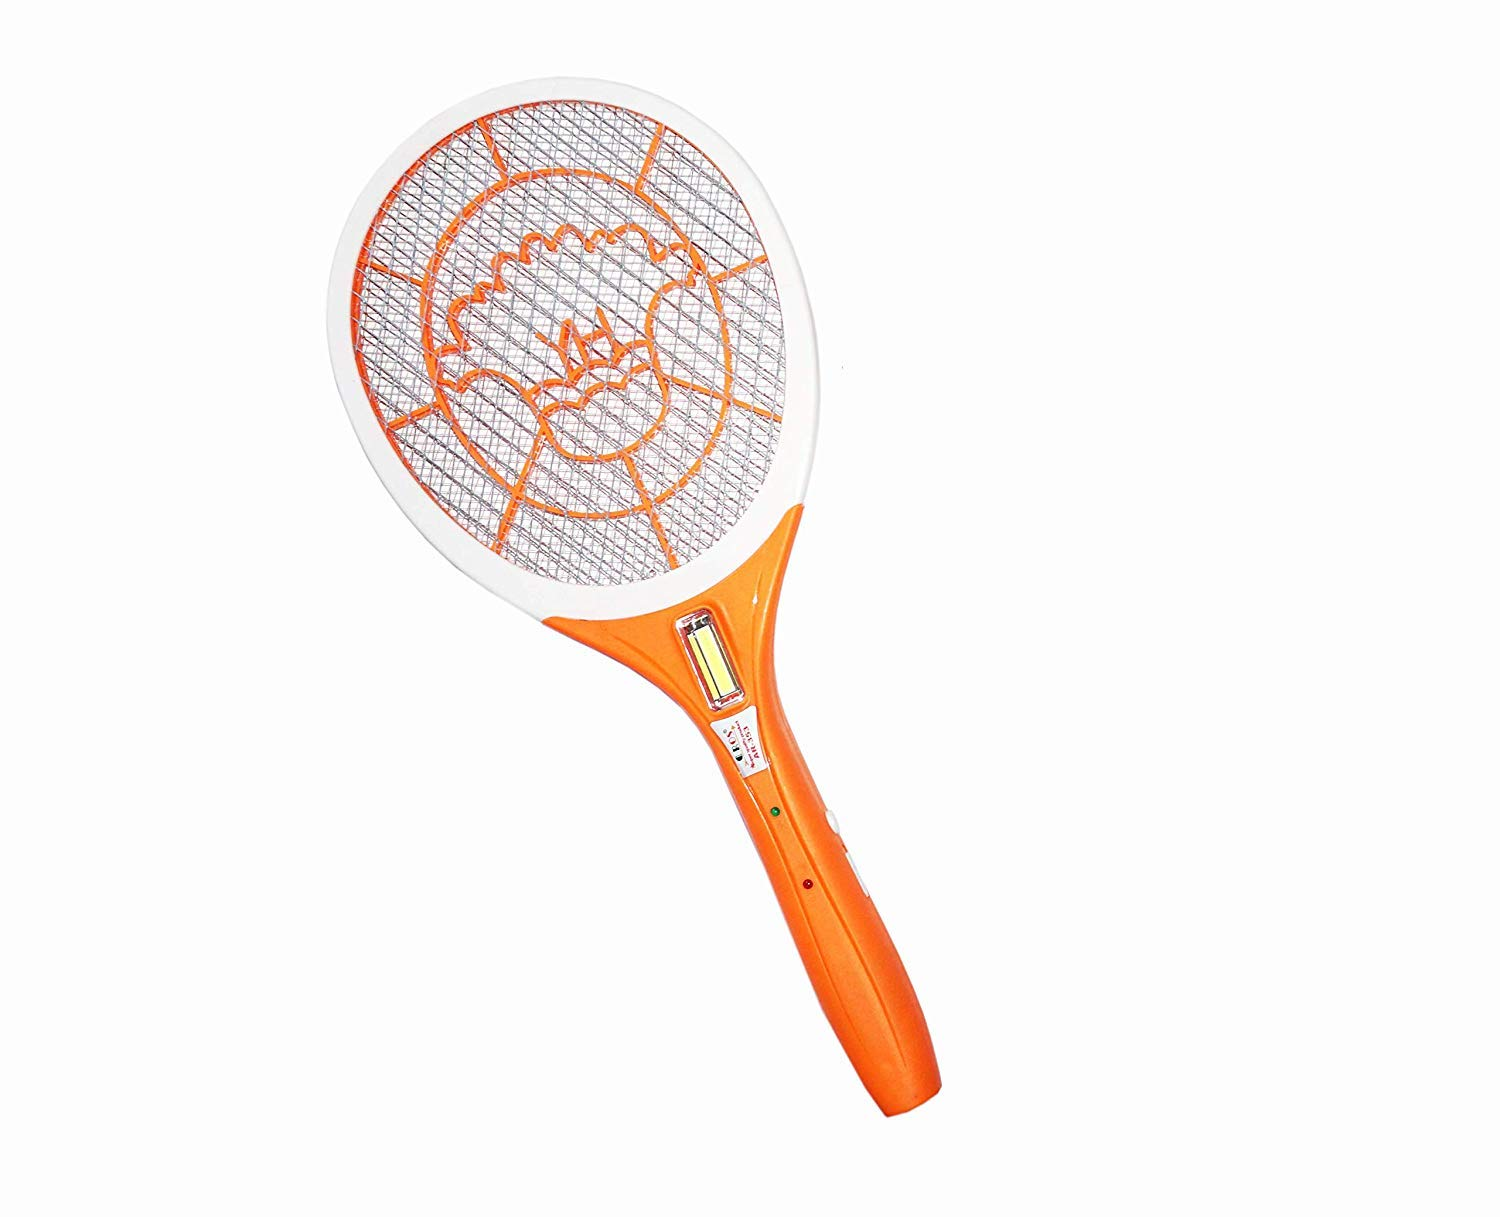 Achara-E-Com Mosquito Killer Swatter Rechargeable 100 % Environment-Friendly Shock Proof-Safe Zapper Bat Racket with Torch for Human , Pets, Standard Size, Multicolour (B07SCZ6BSP) Amazon Price History, Amazon Price Tracker